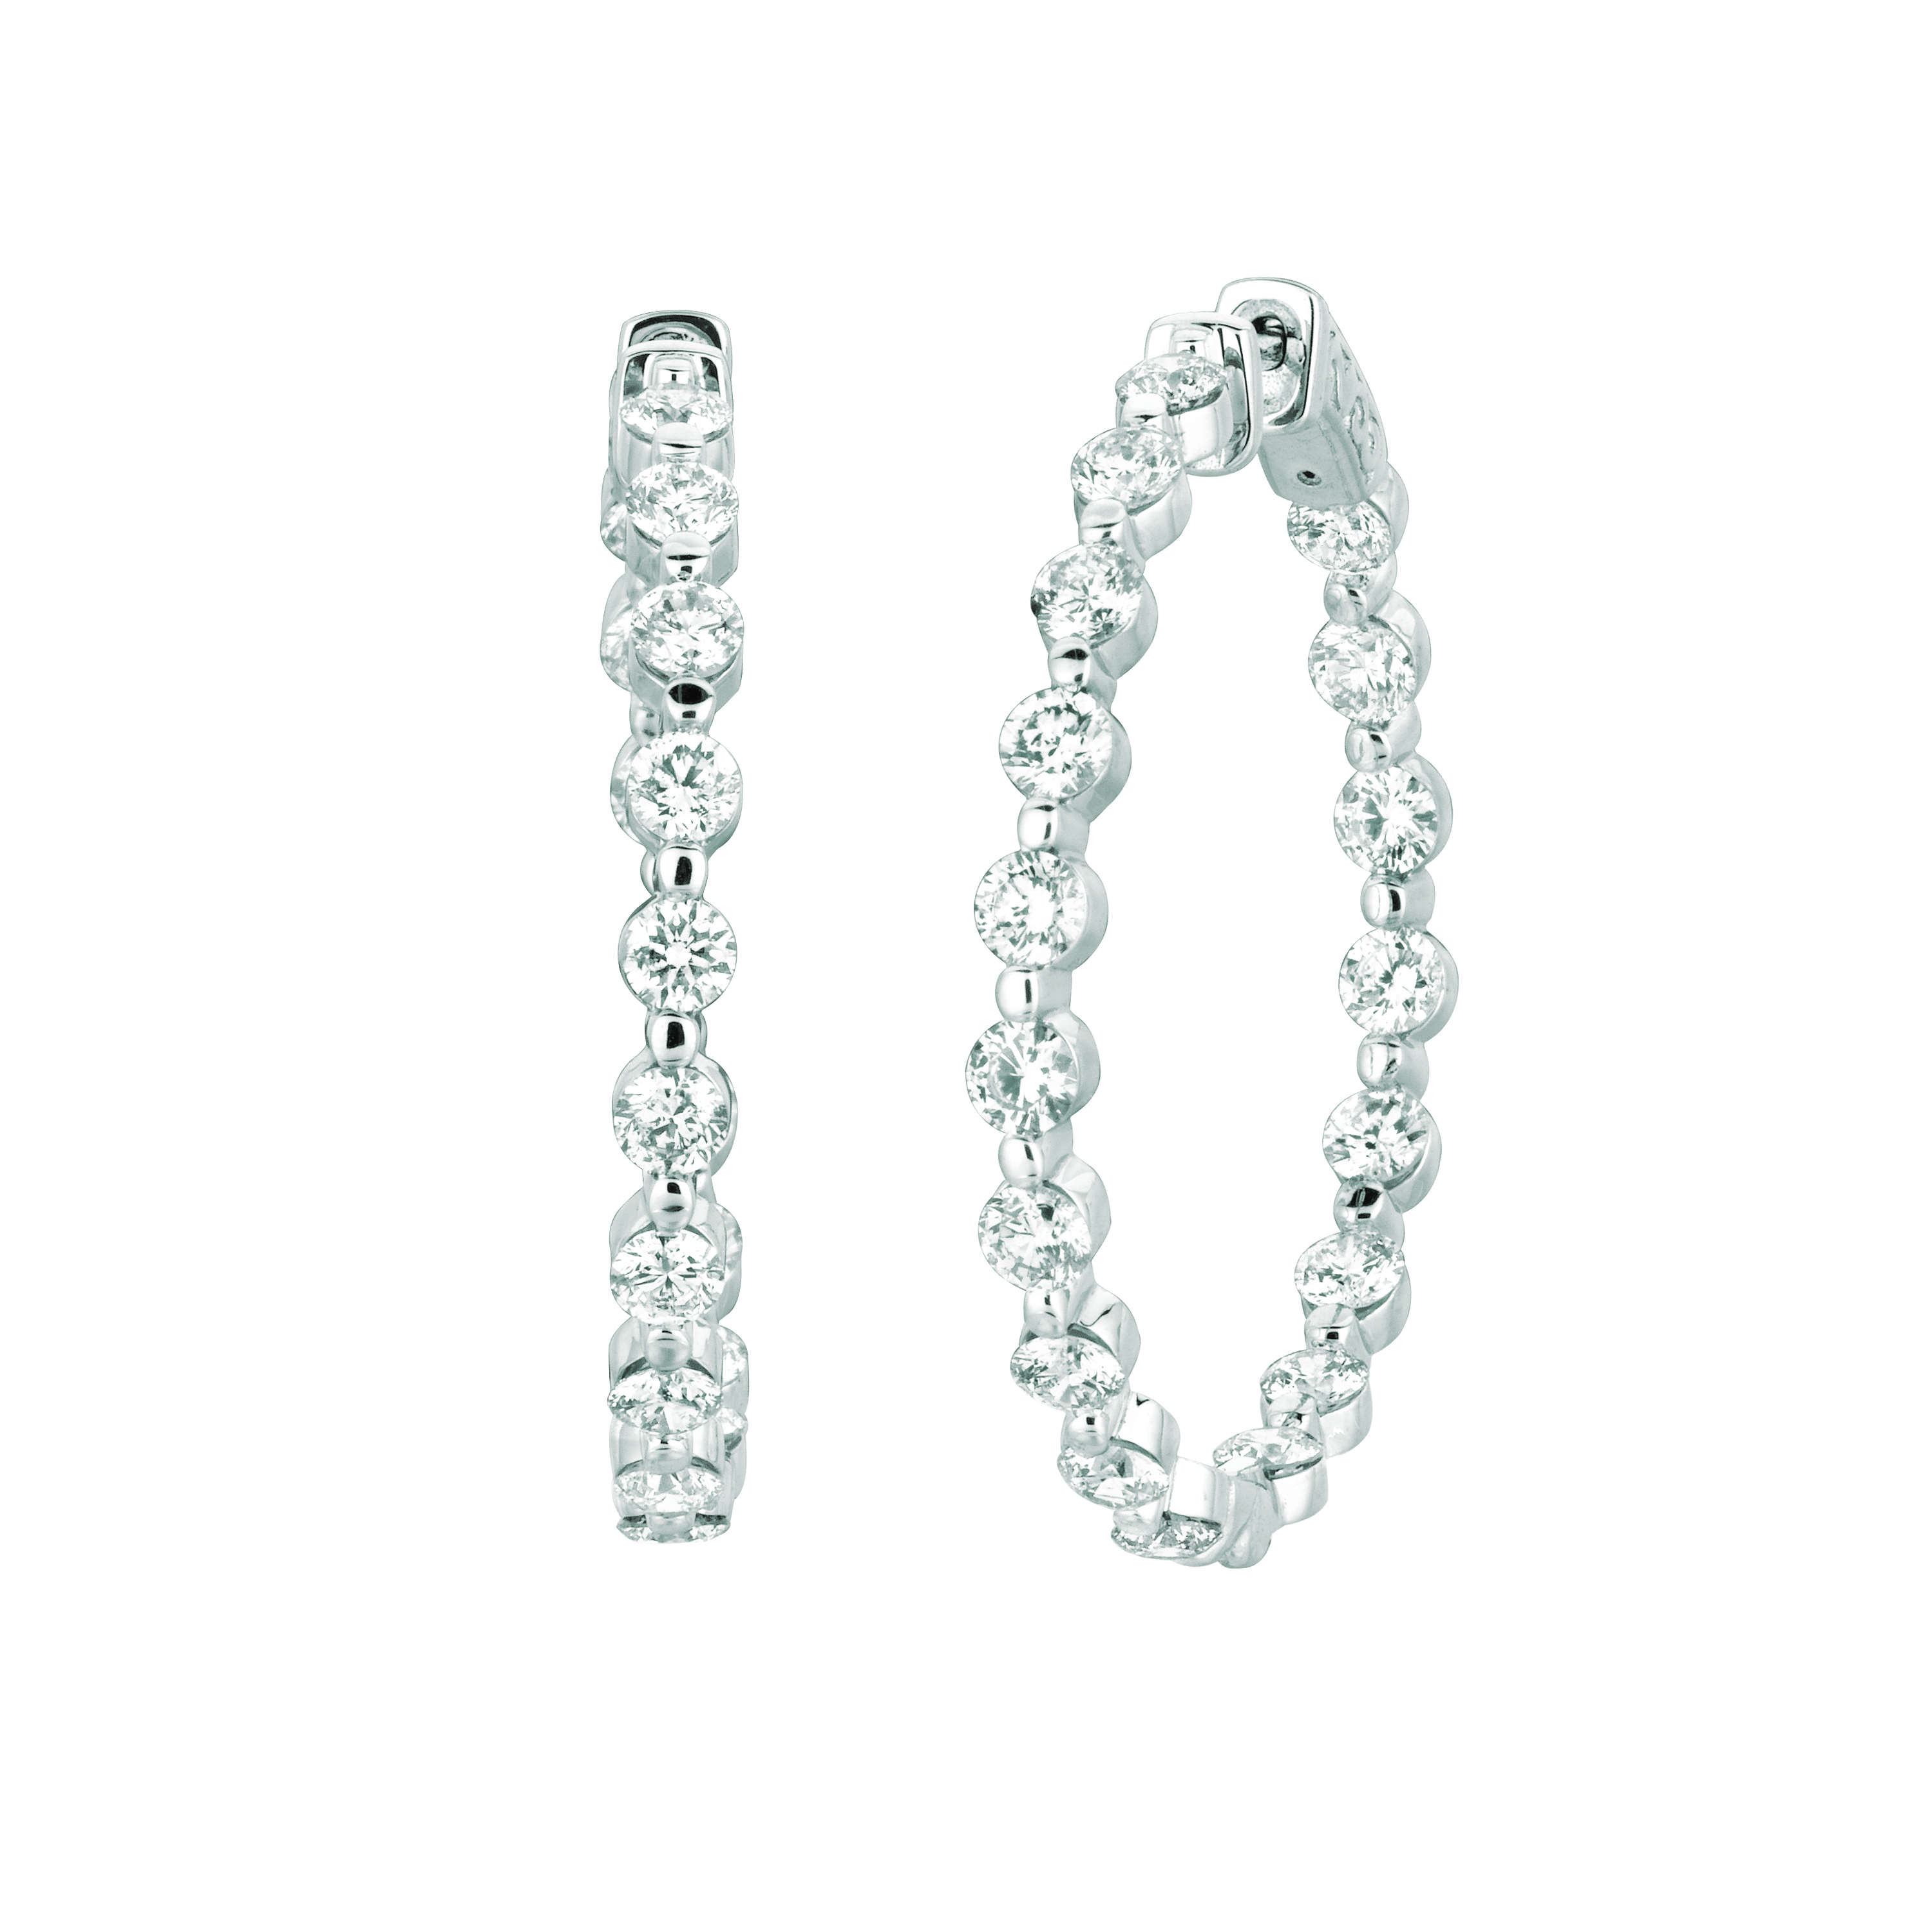 15 Pointer diamond hoop earrings. Price: $9367.33